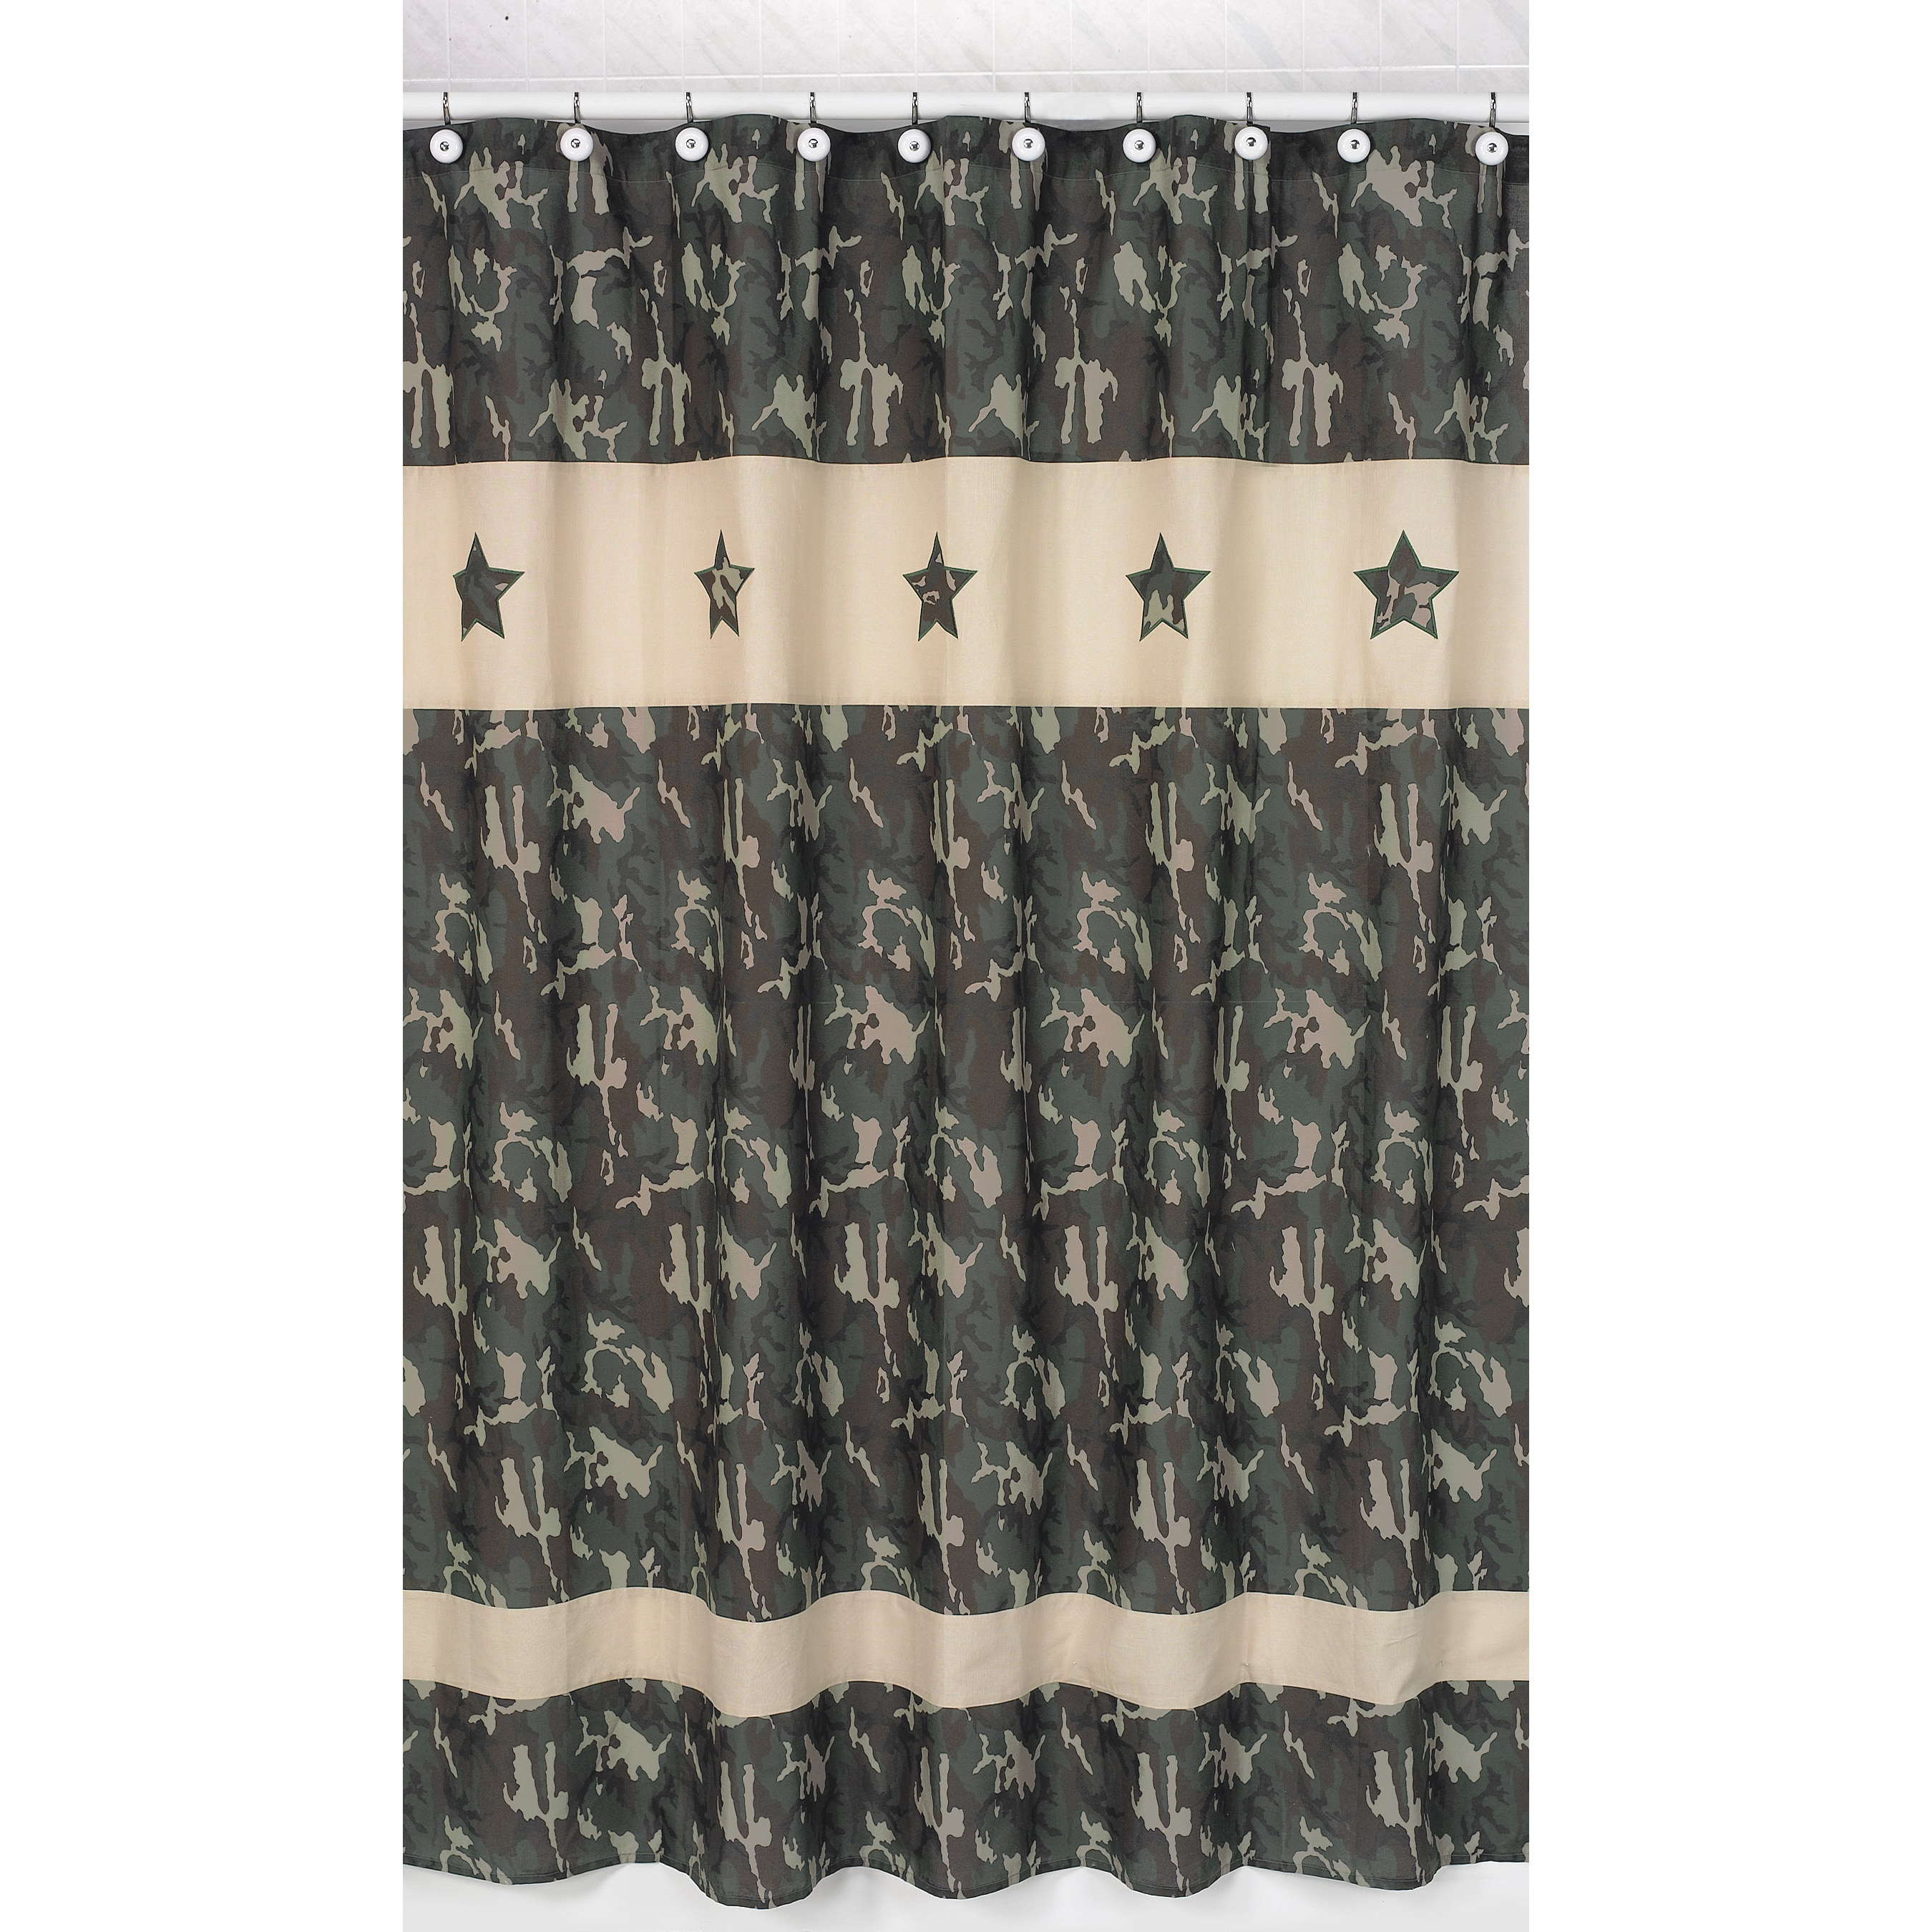 Sweet Jojo Designs Green Army Camouflage Kids Shower Curtain at Sears.com